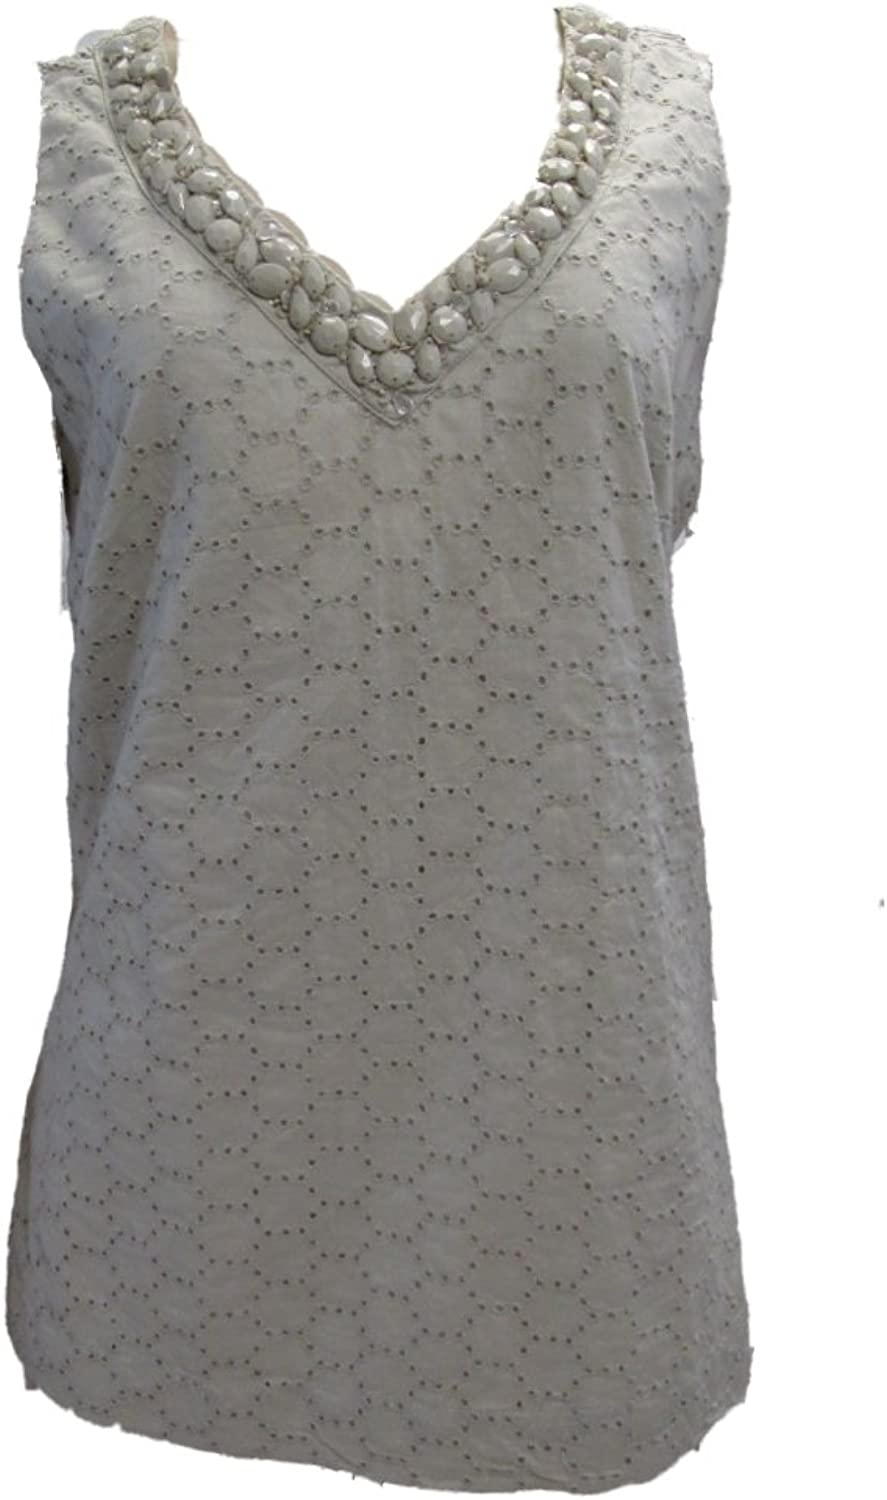 Charter Club Womens Sleeveless Blouse Tank Top 6 Sand